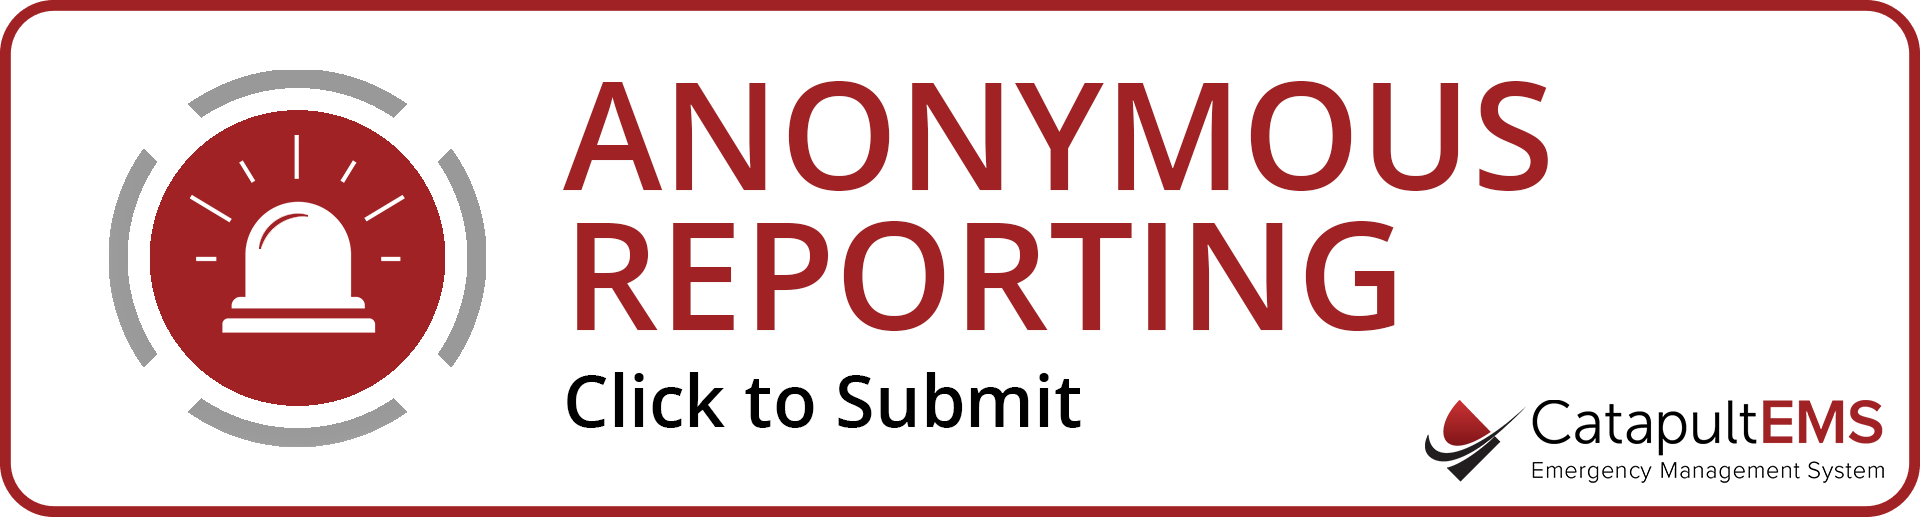 Anonymous Reporting. Click To Submit. CatapultEMS - Emergency Management System